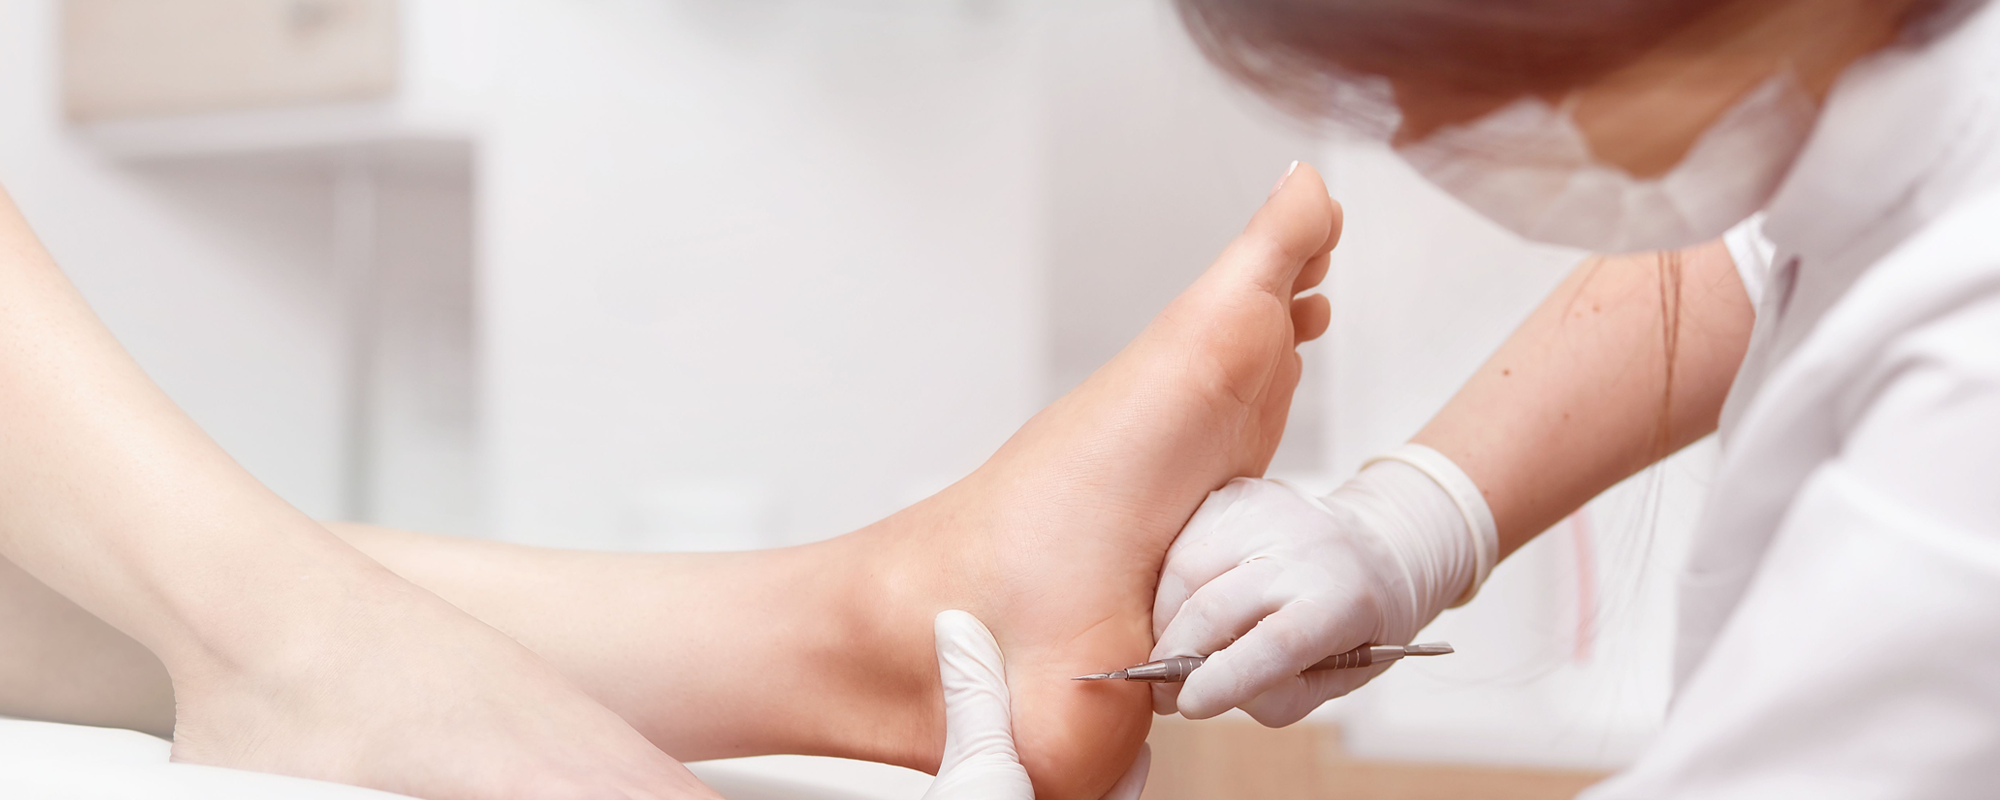 </span>Podiatry services<span> that you can trust</span>